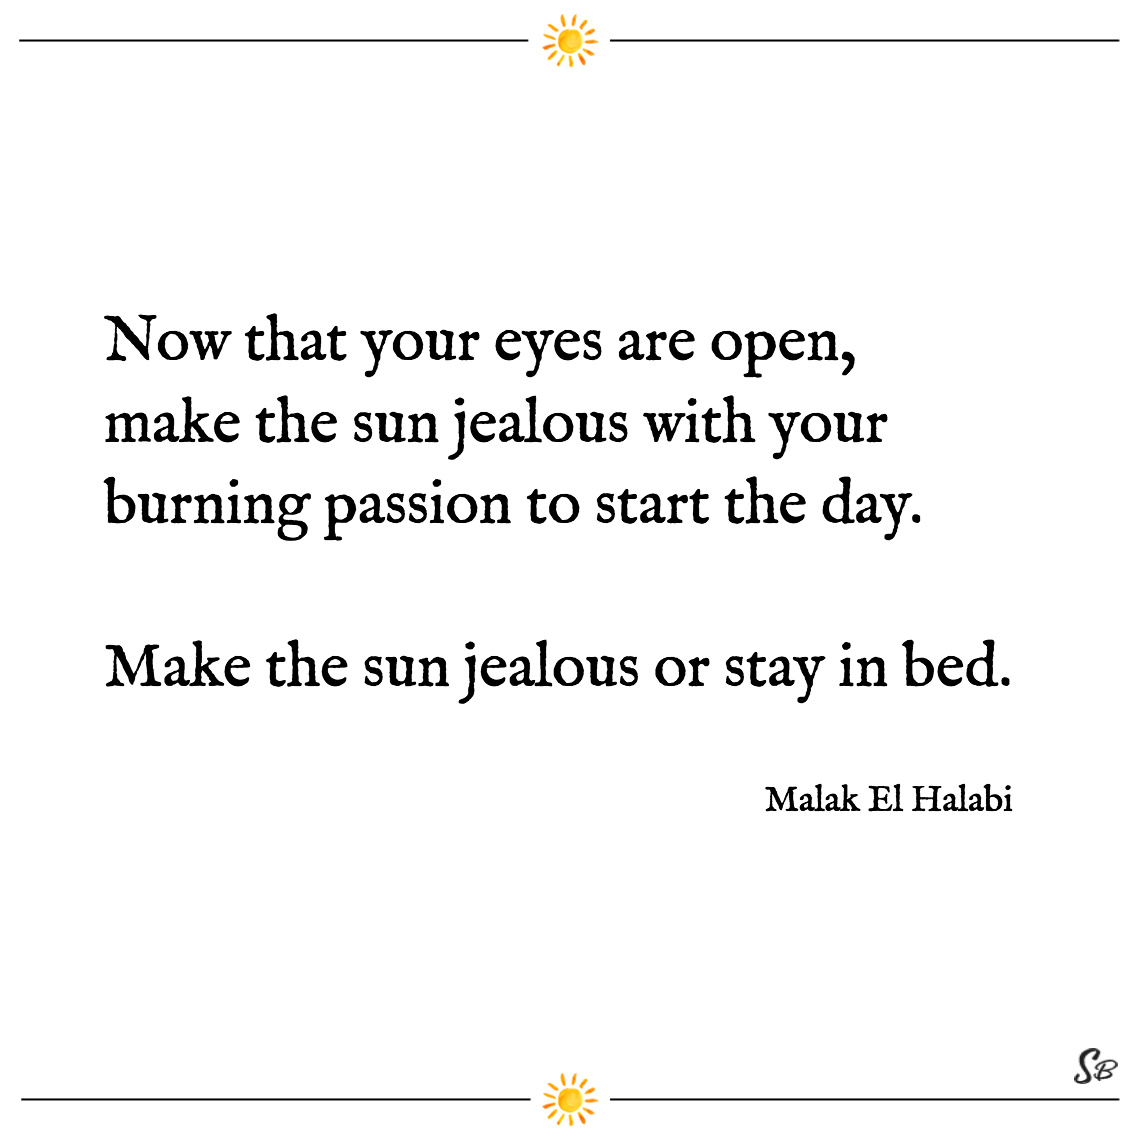 Now that your eyes are open, make the sun jealous with your burning passion to start the day. make the sun jealous or stay in bed. malak el halabi